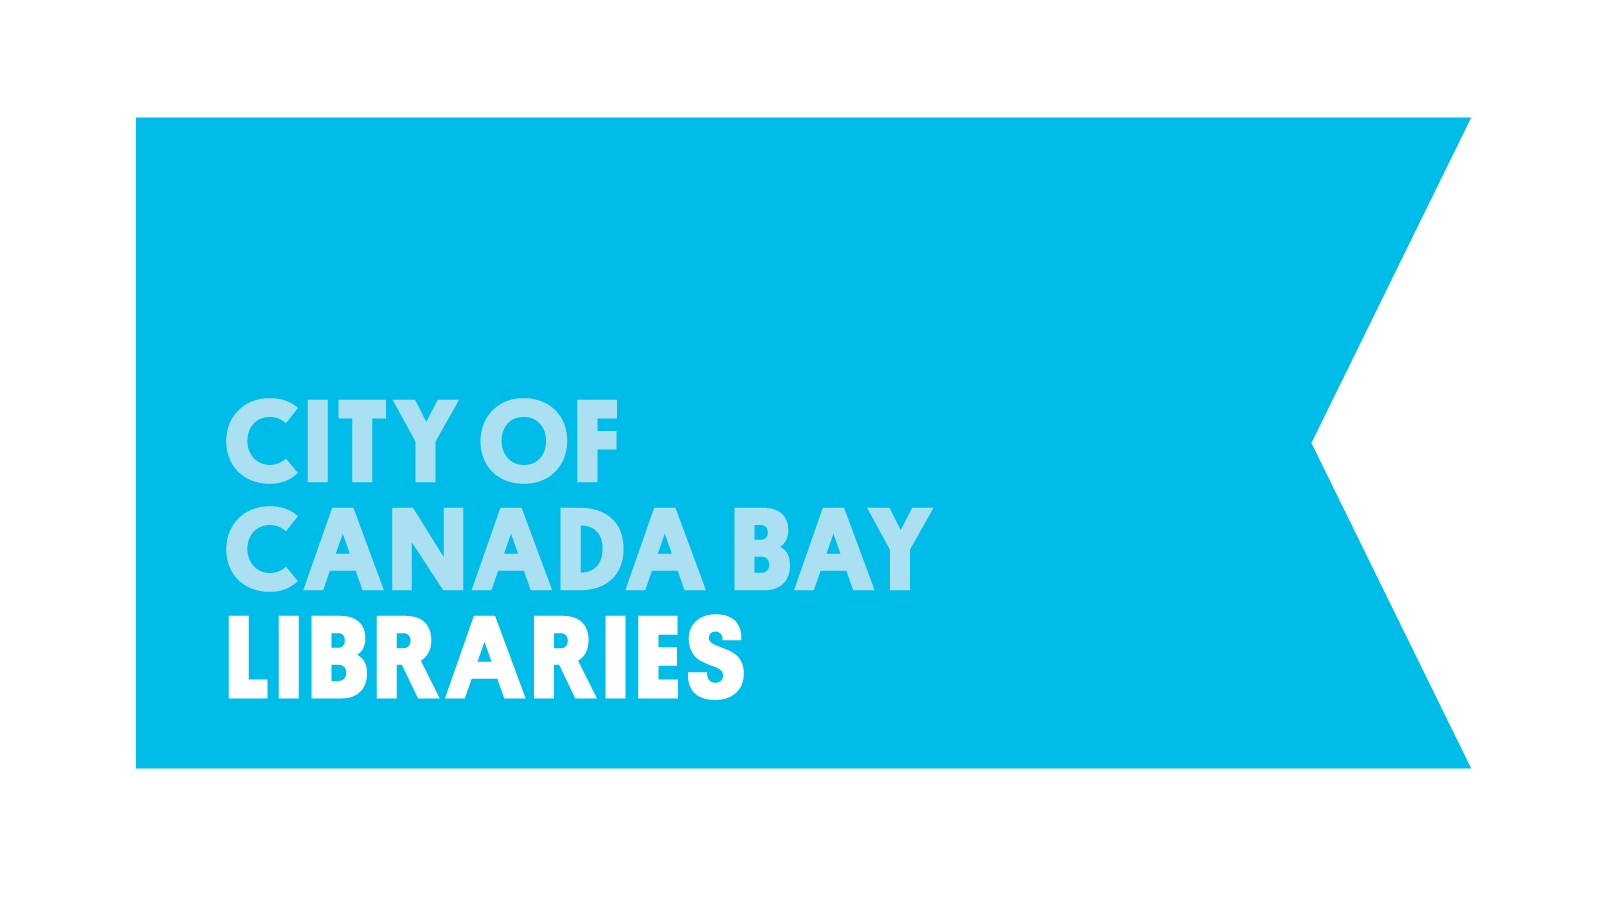 Canada Bay libraries